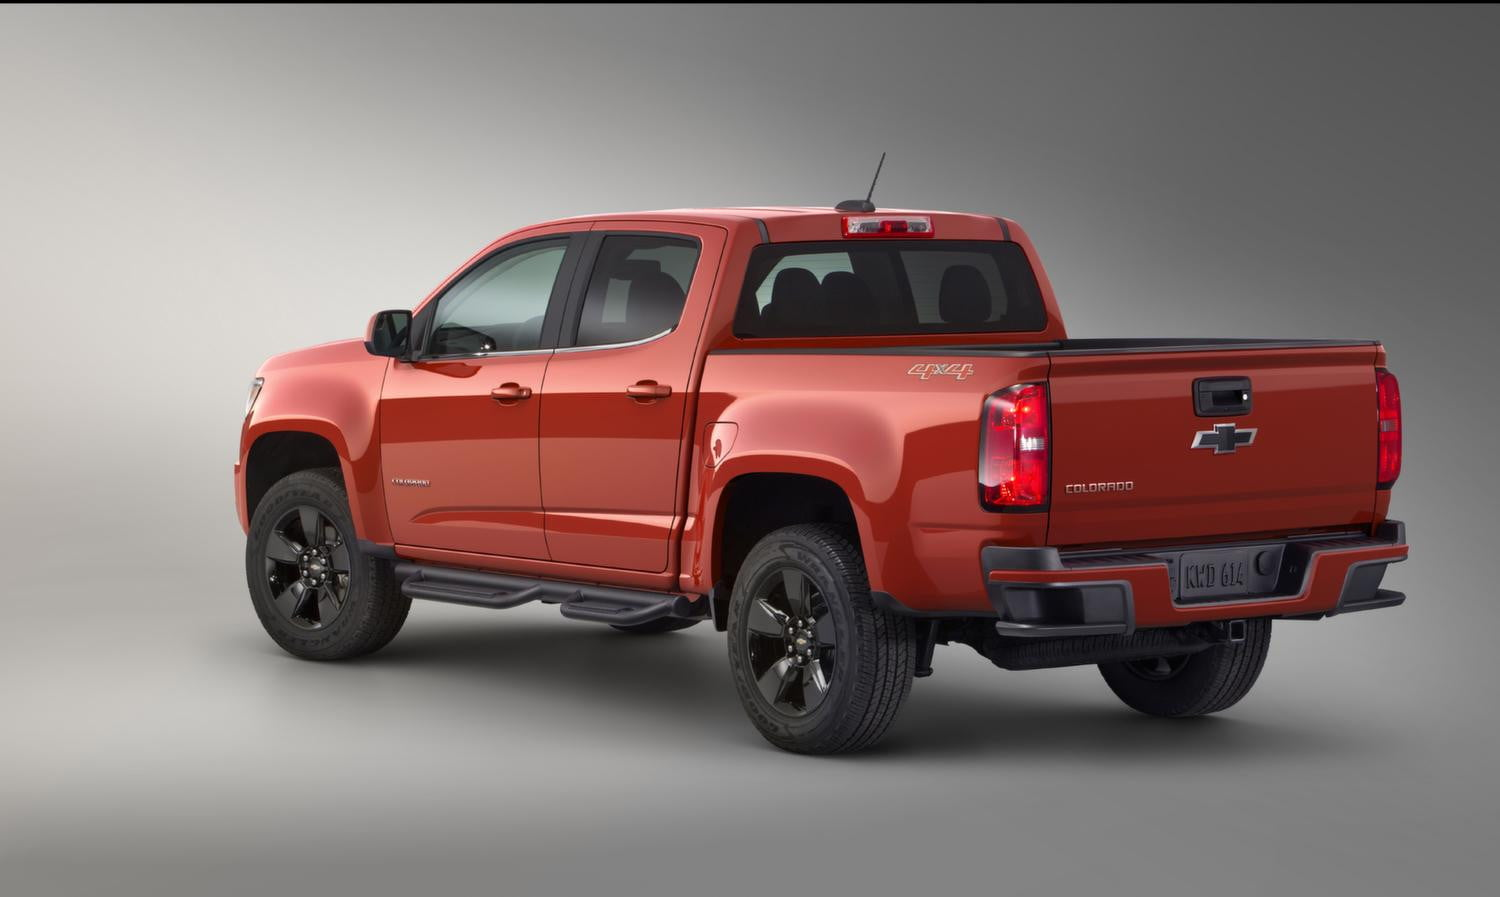 With the gearon edition chevy colorado the adventure comes with